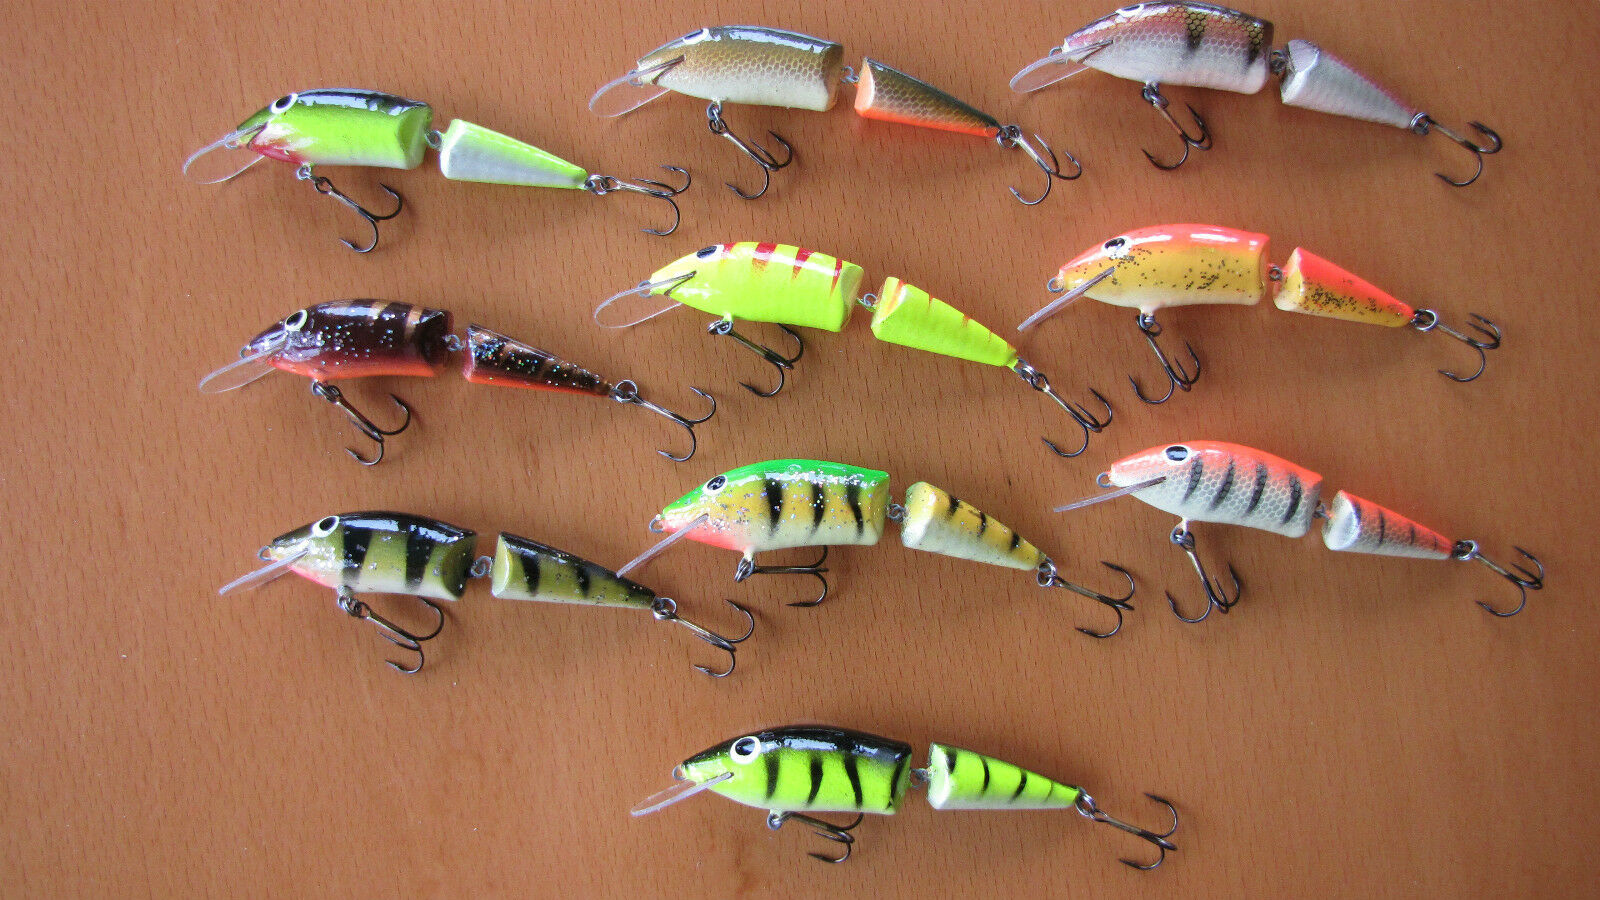 10 x LURE Gold Gold Gold ASSAN WOBBLER JOINTED-G 8,5cm 8,0g FLOATING HAND JOB made of wood dd7c64